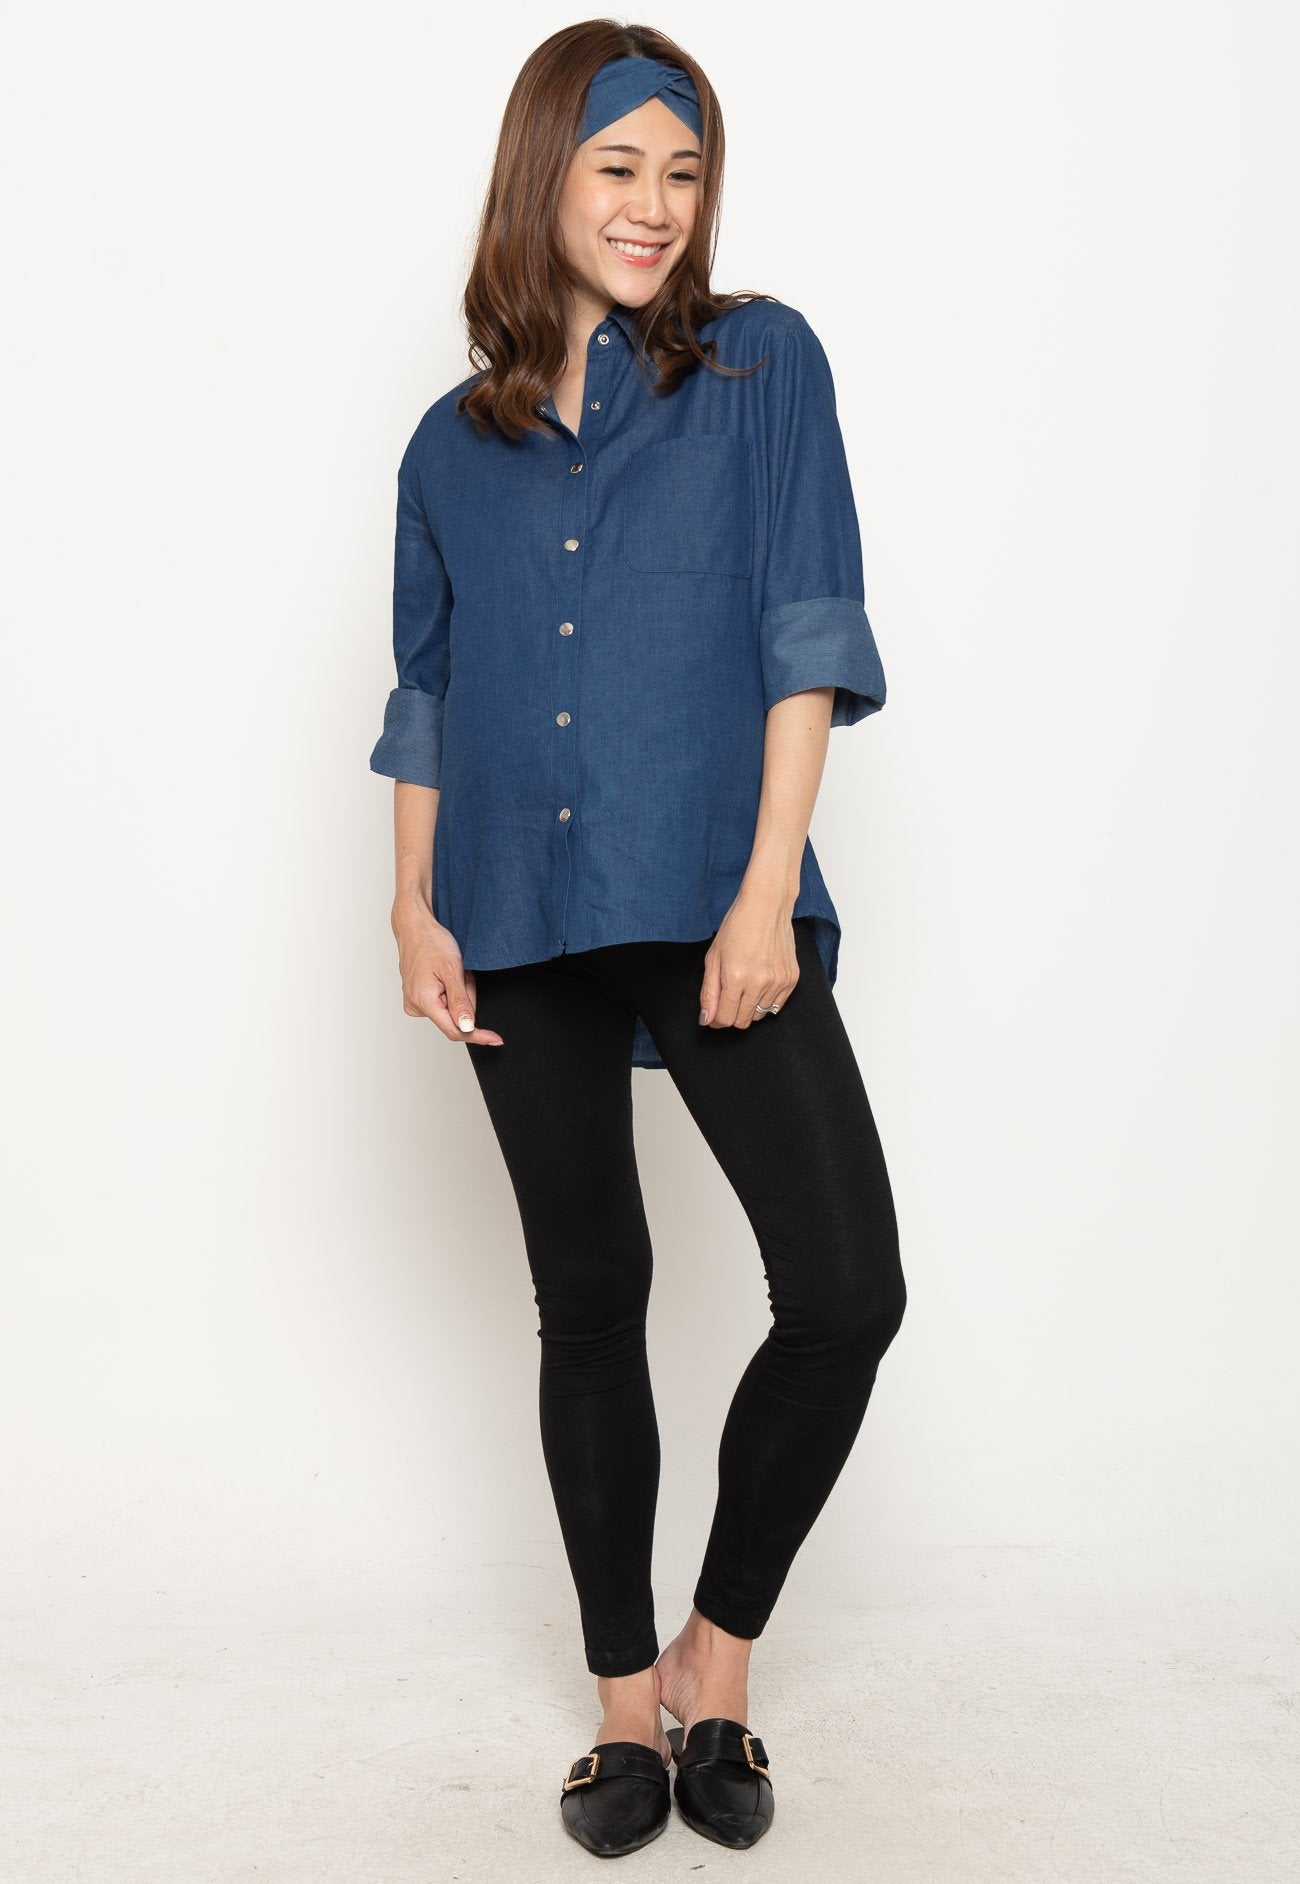 Cotton Jeans Casual Nursing Top in Dark Jeans  by Jump Eat Cry - Maternity and nursing wear